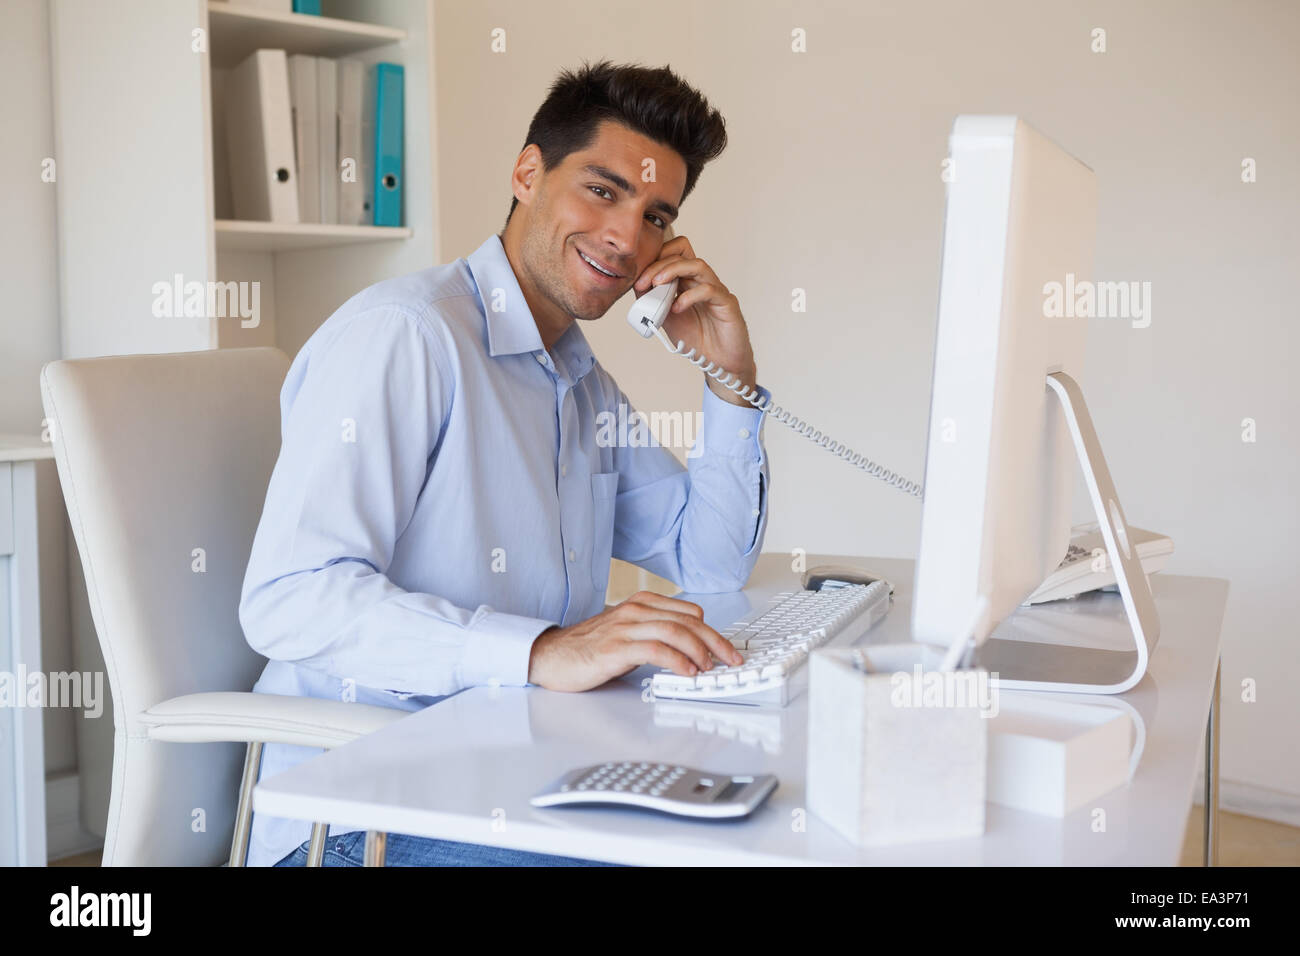 Casual businessman talking on the telephone - Stock Image